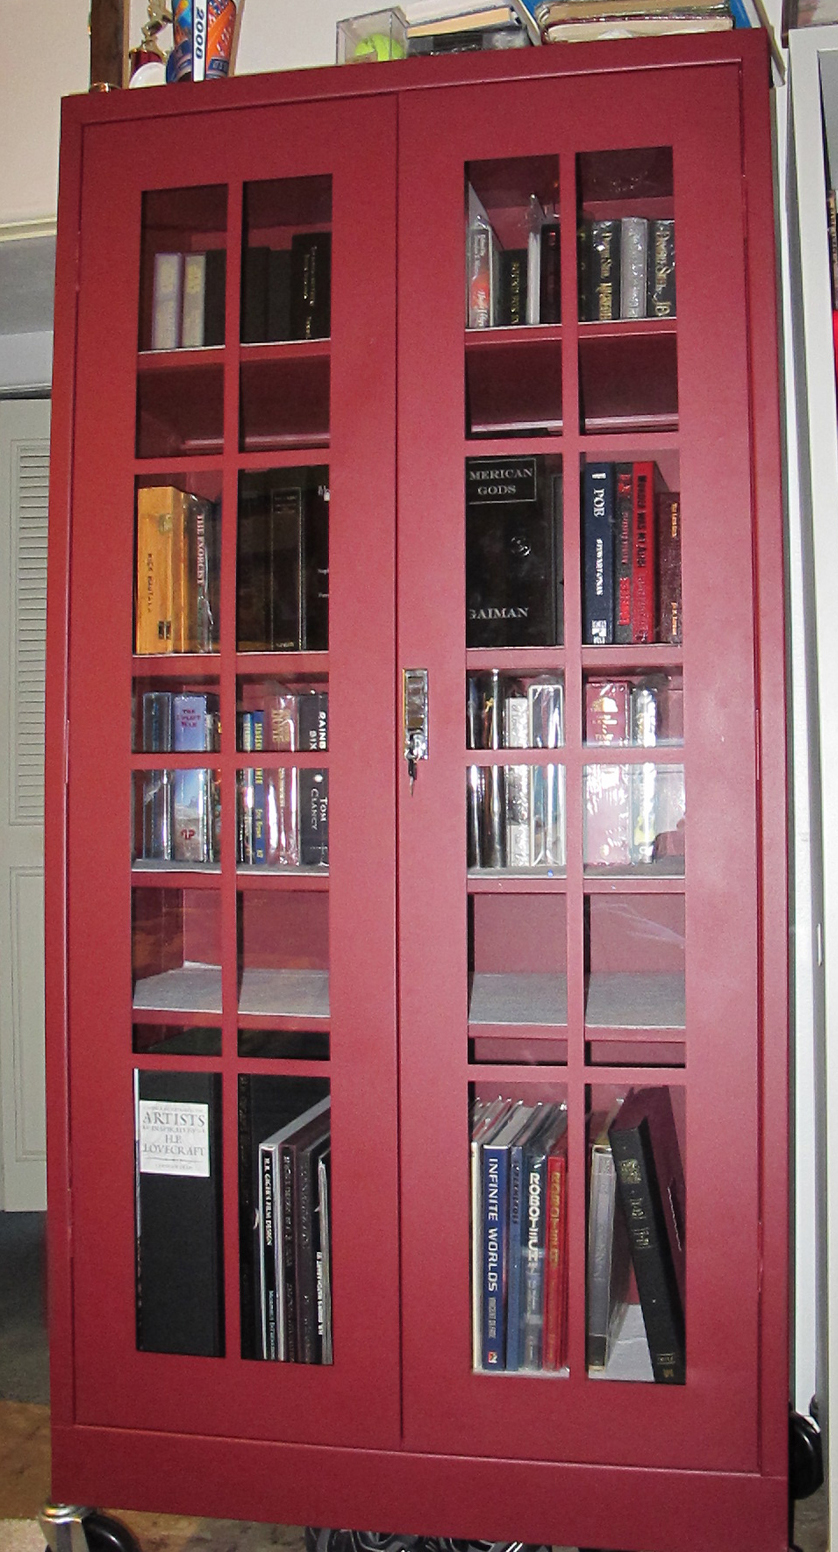 My Bookcases & Books